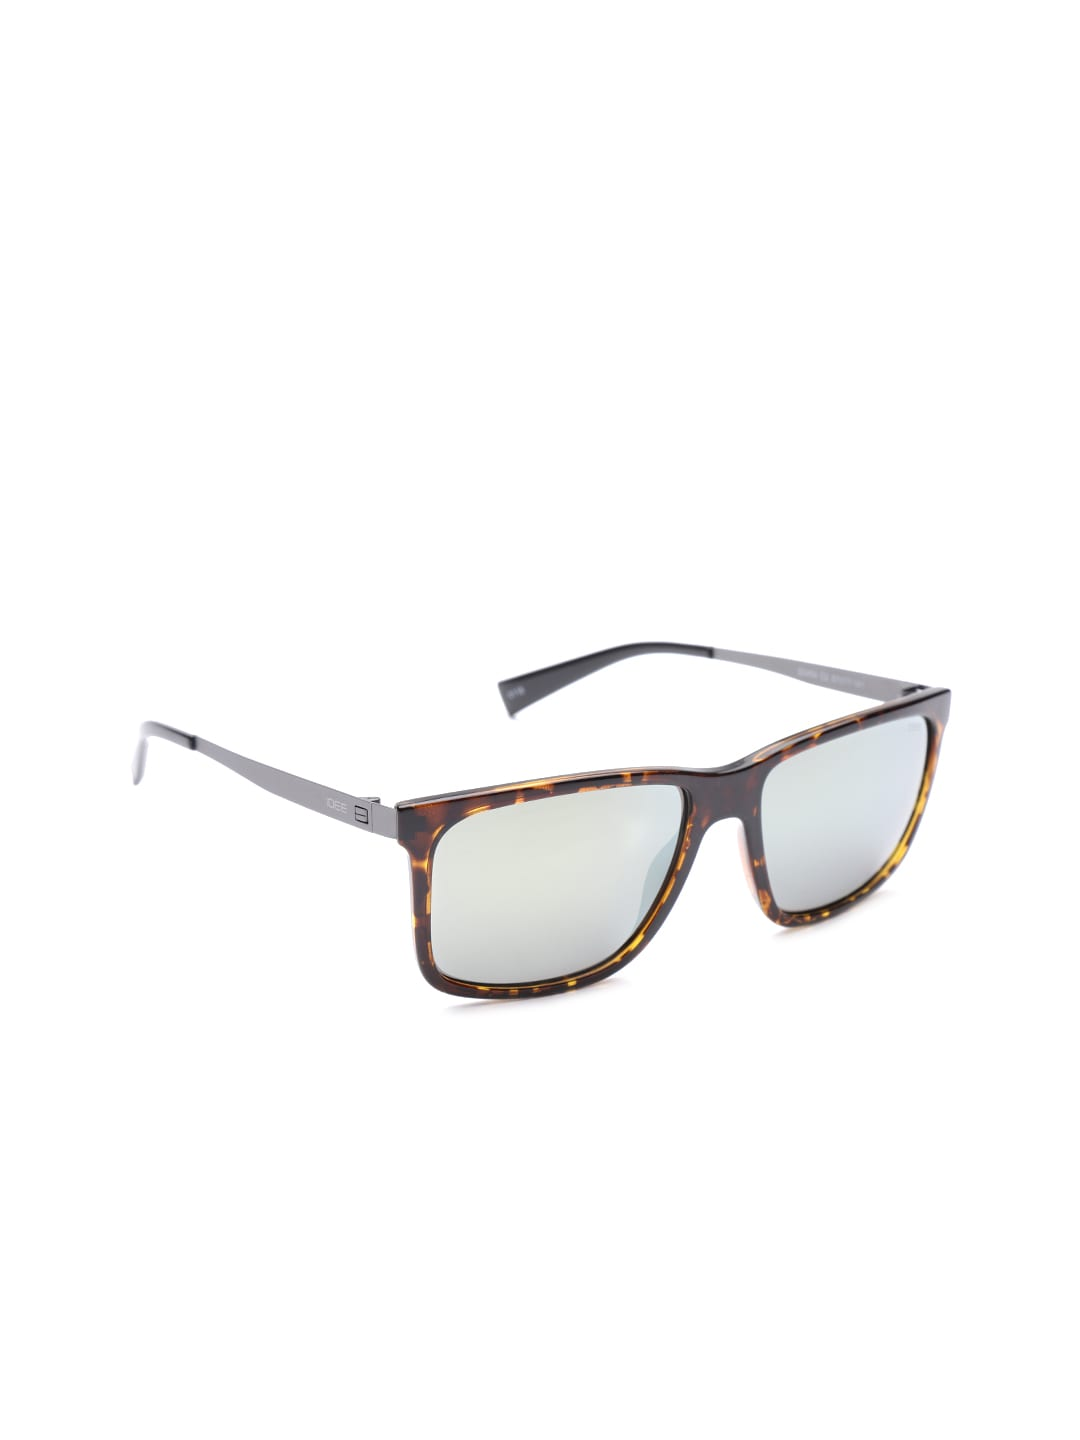 662f4cb792c Idee Sunglasses - Buy Idee Sunglasses Online in India